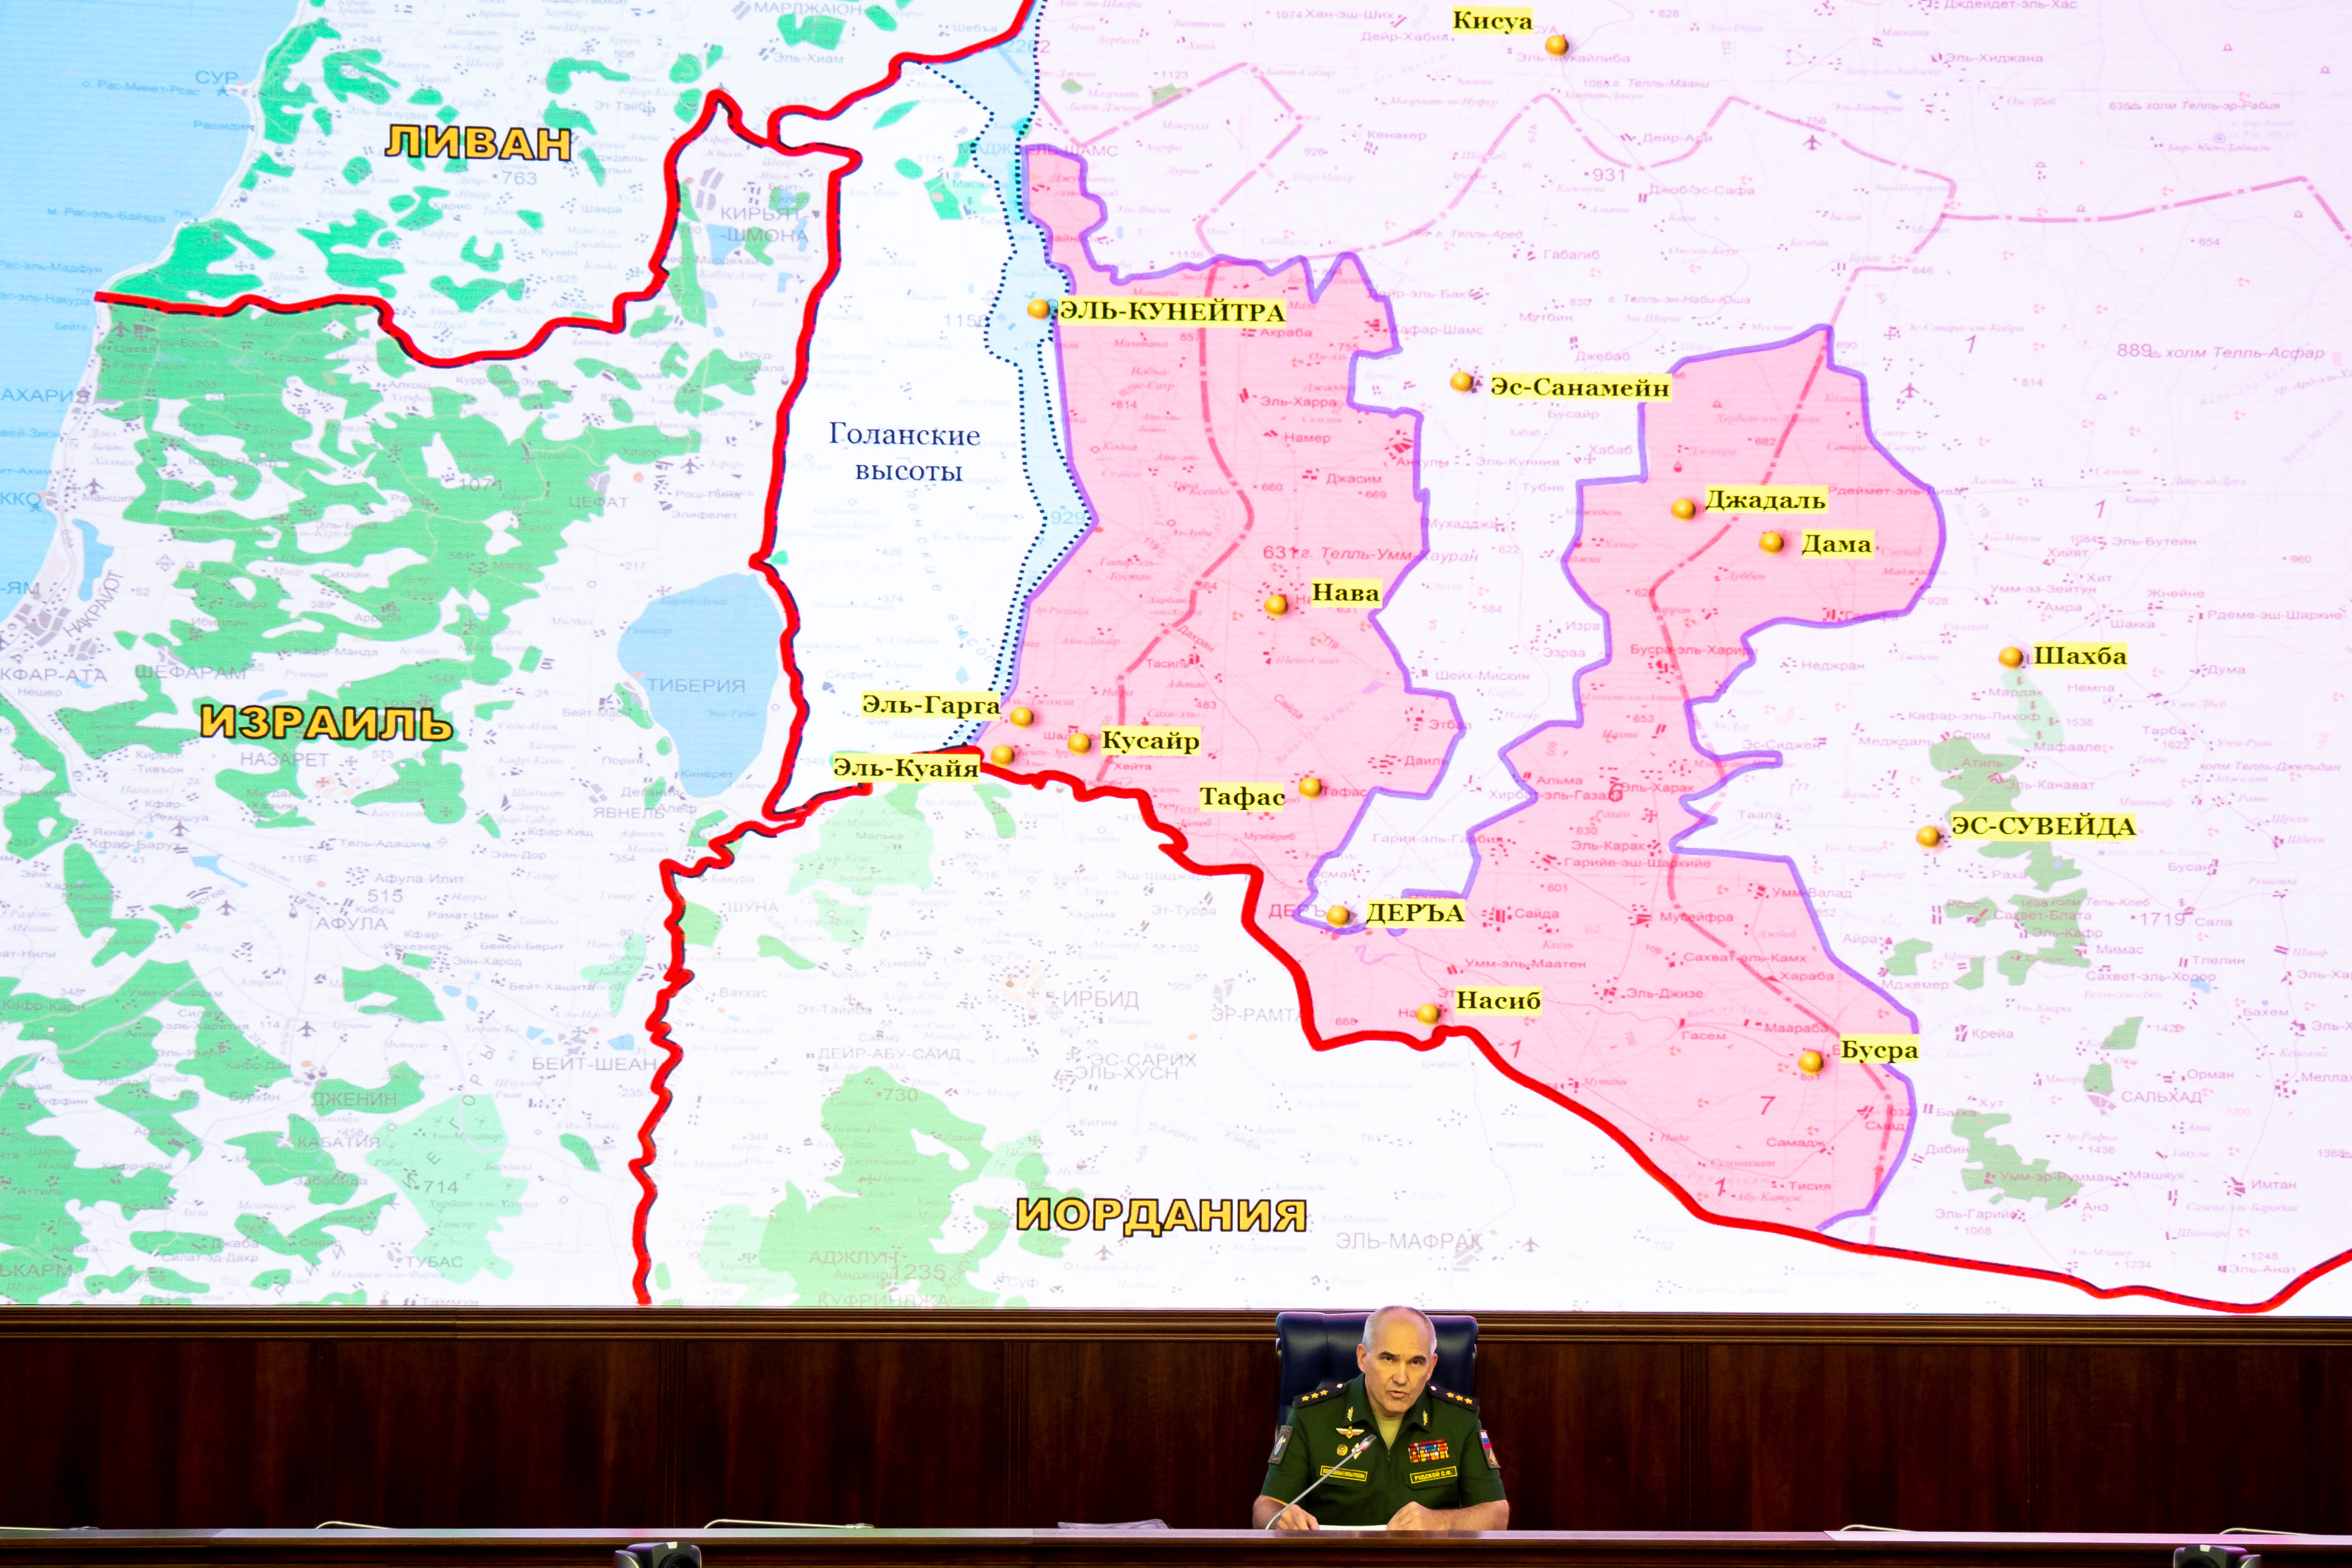 Chief of the Main Operational Directorate of the General Staff of the Russian Armed Forces Lieutenant General Sergei Rudskoi speaks during a news briefing, with a map showing the territory of Israel, Jordan, Lebanon and Syria seen in the background, in Moscow, Russia August 2, 2018. Alexander Zemlianichenko/Pool via REUTERS